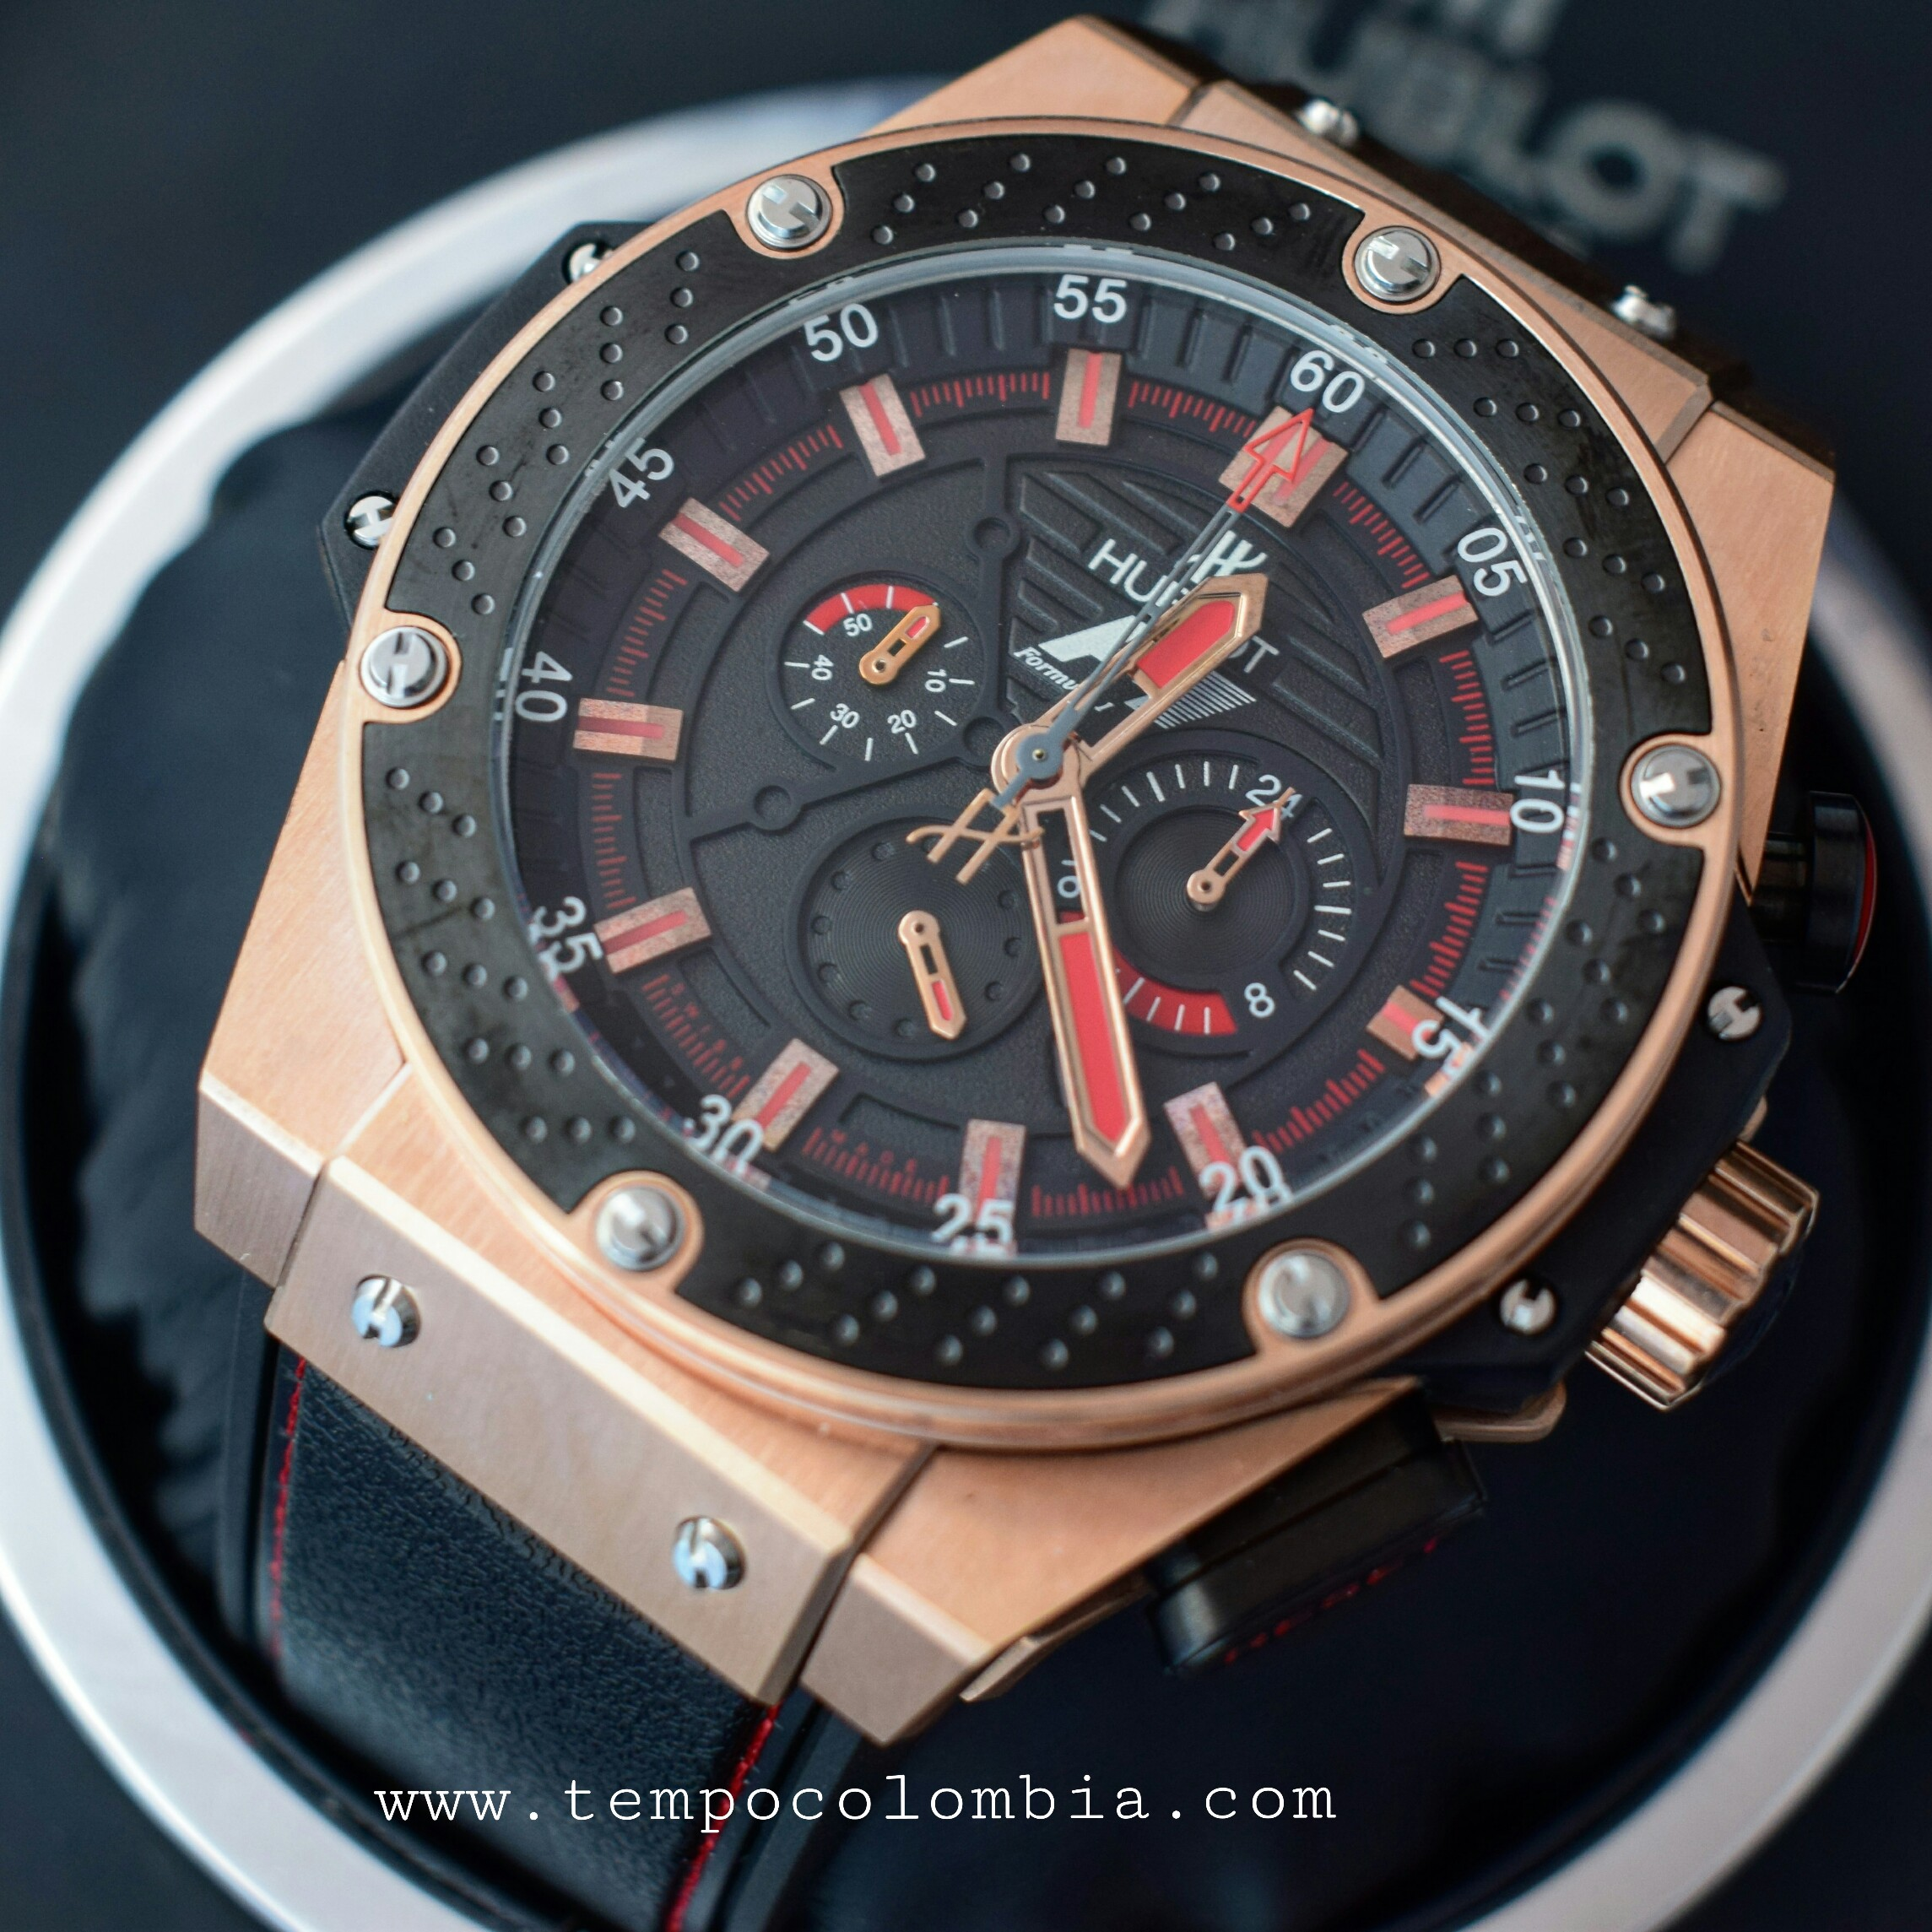 HUBLOT KING POWER FORMULA 1